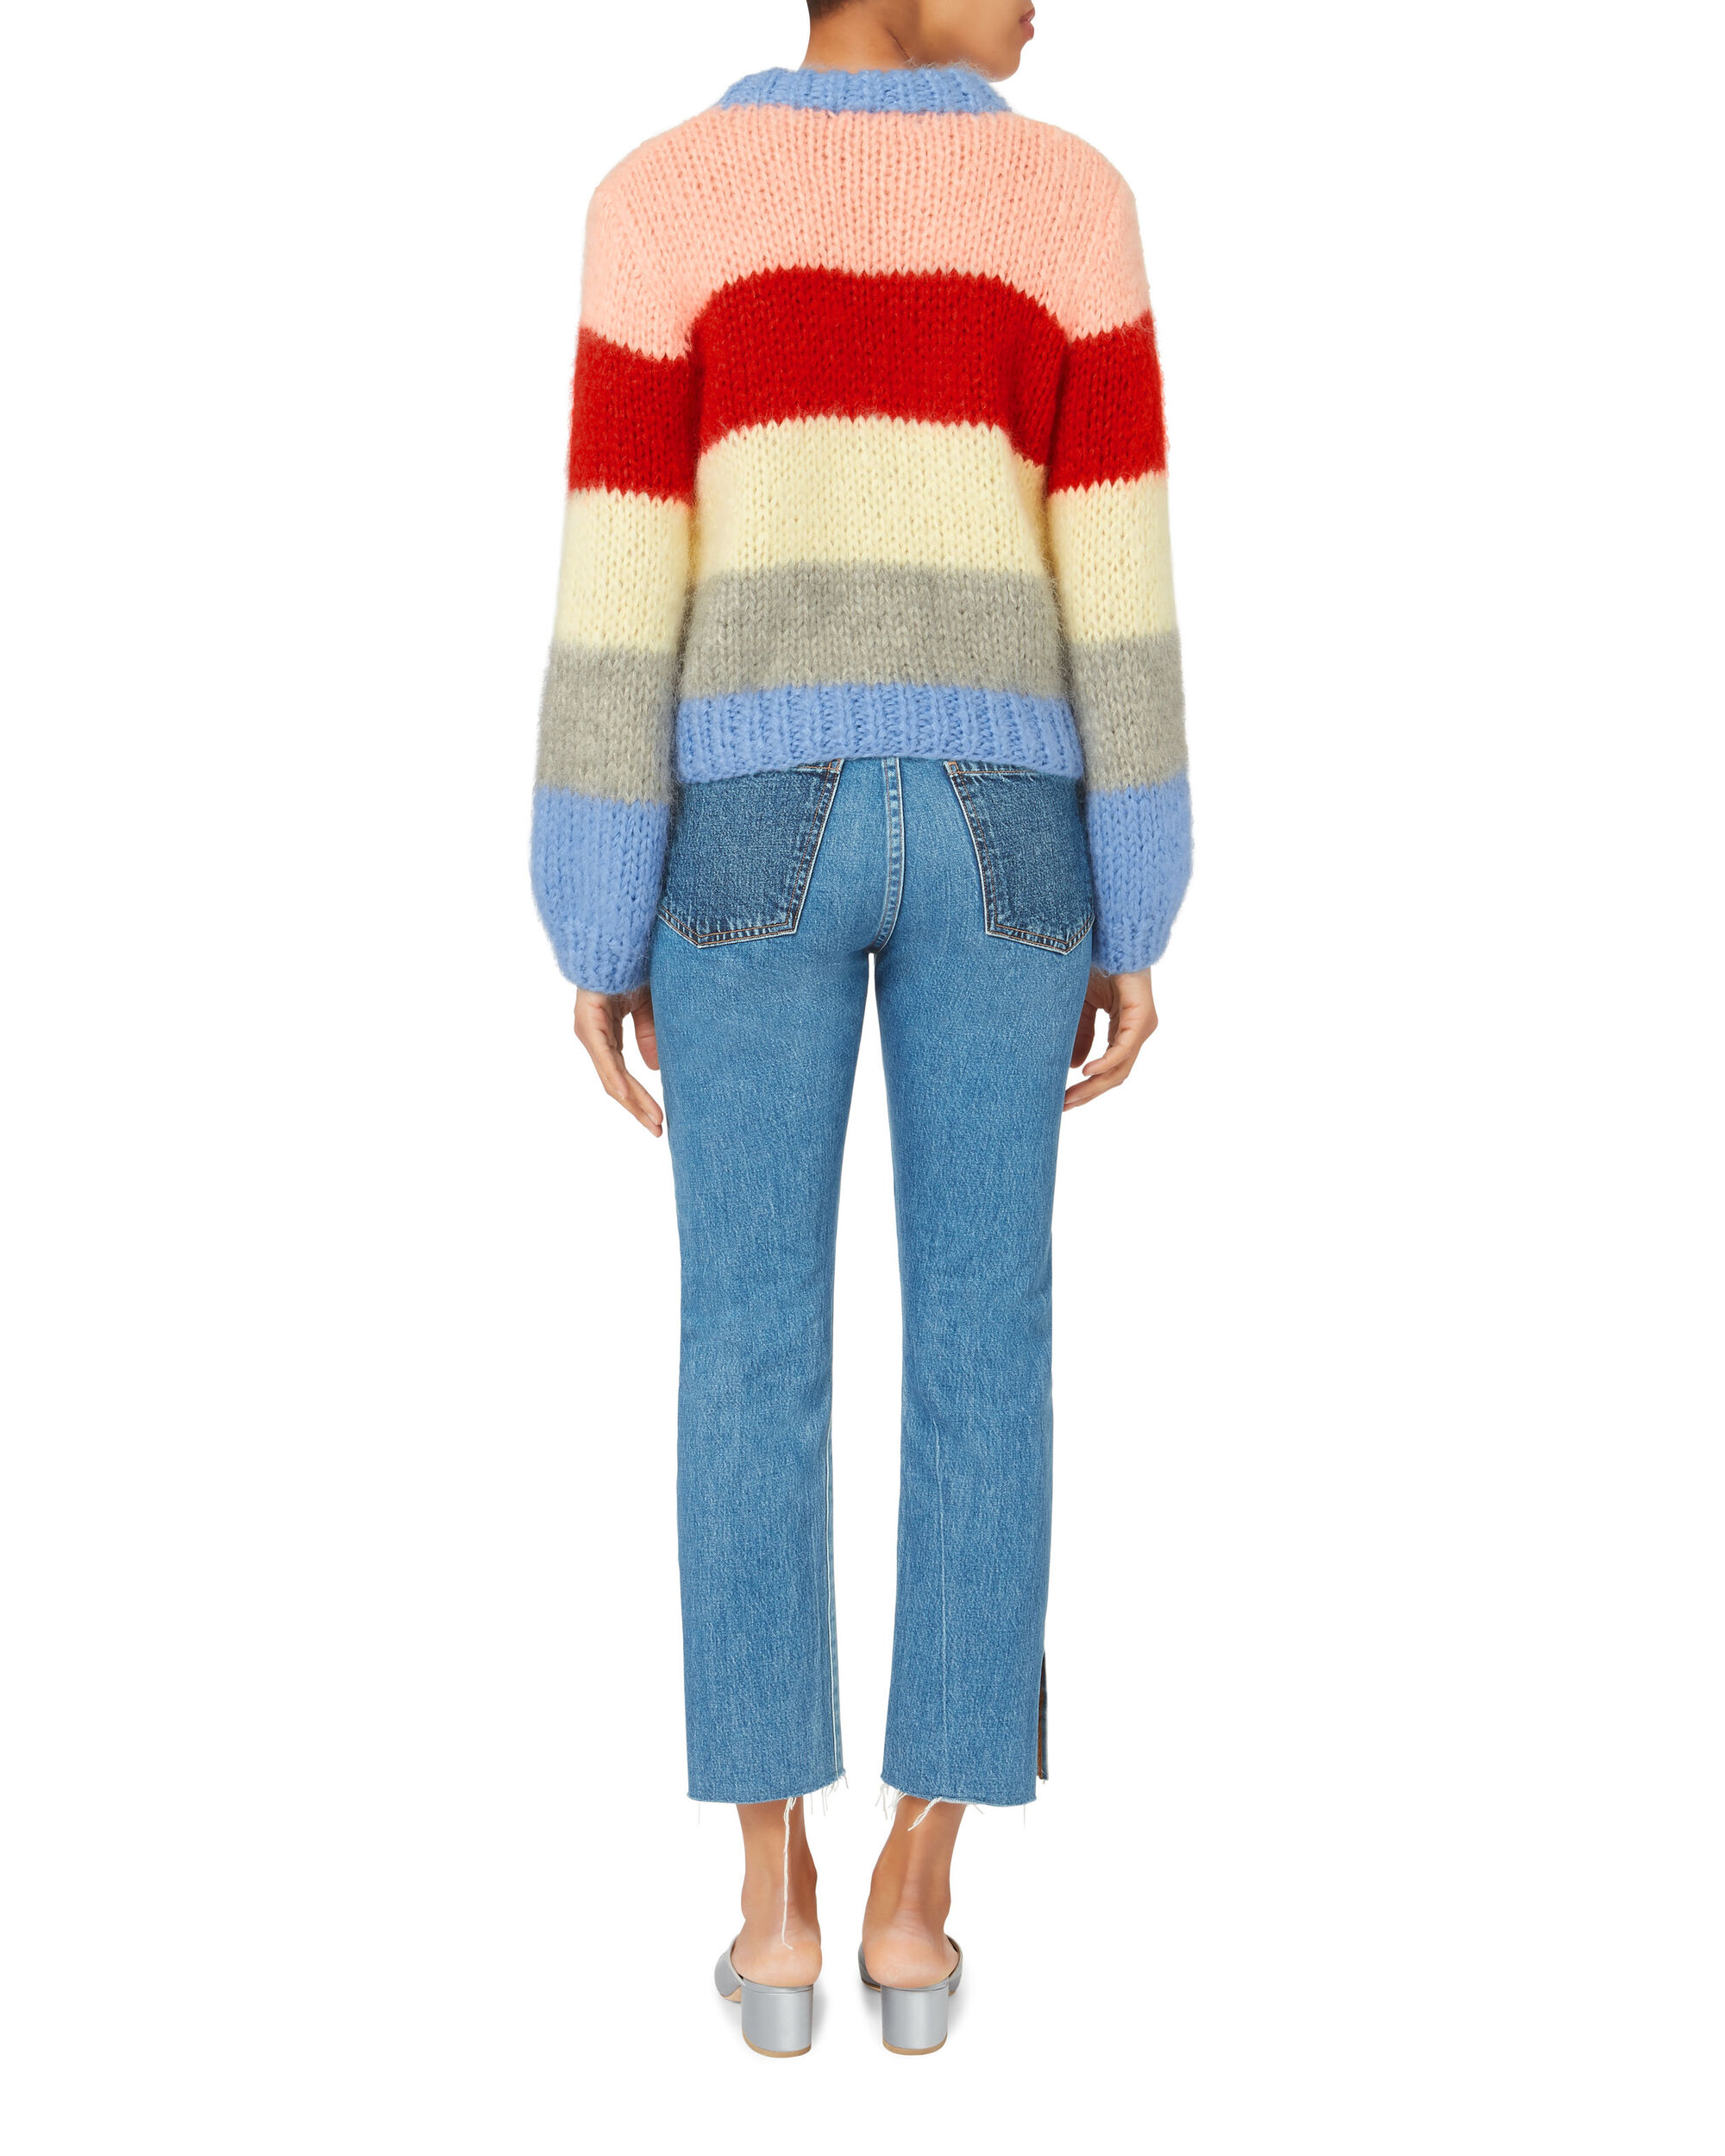 Julliard Colorblock Sweater, MULTI, hi-res